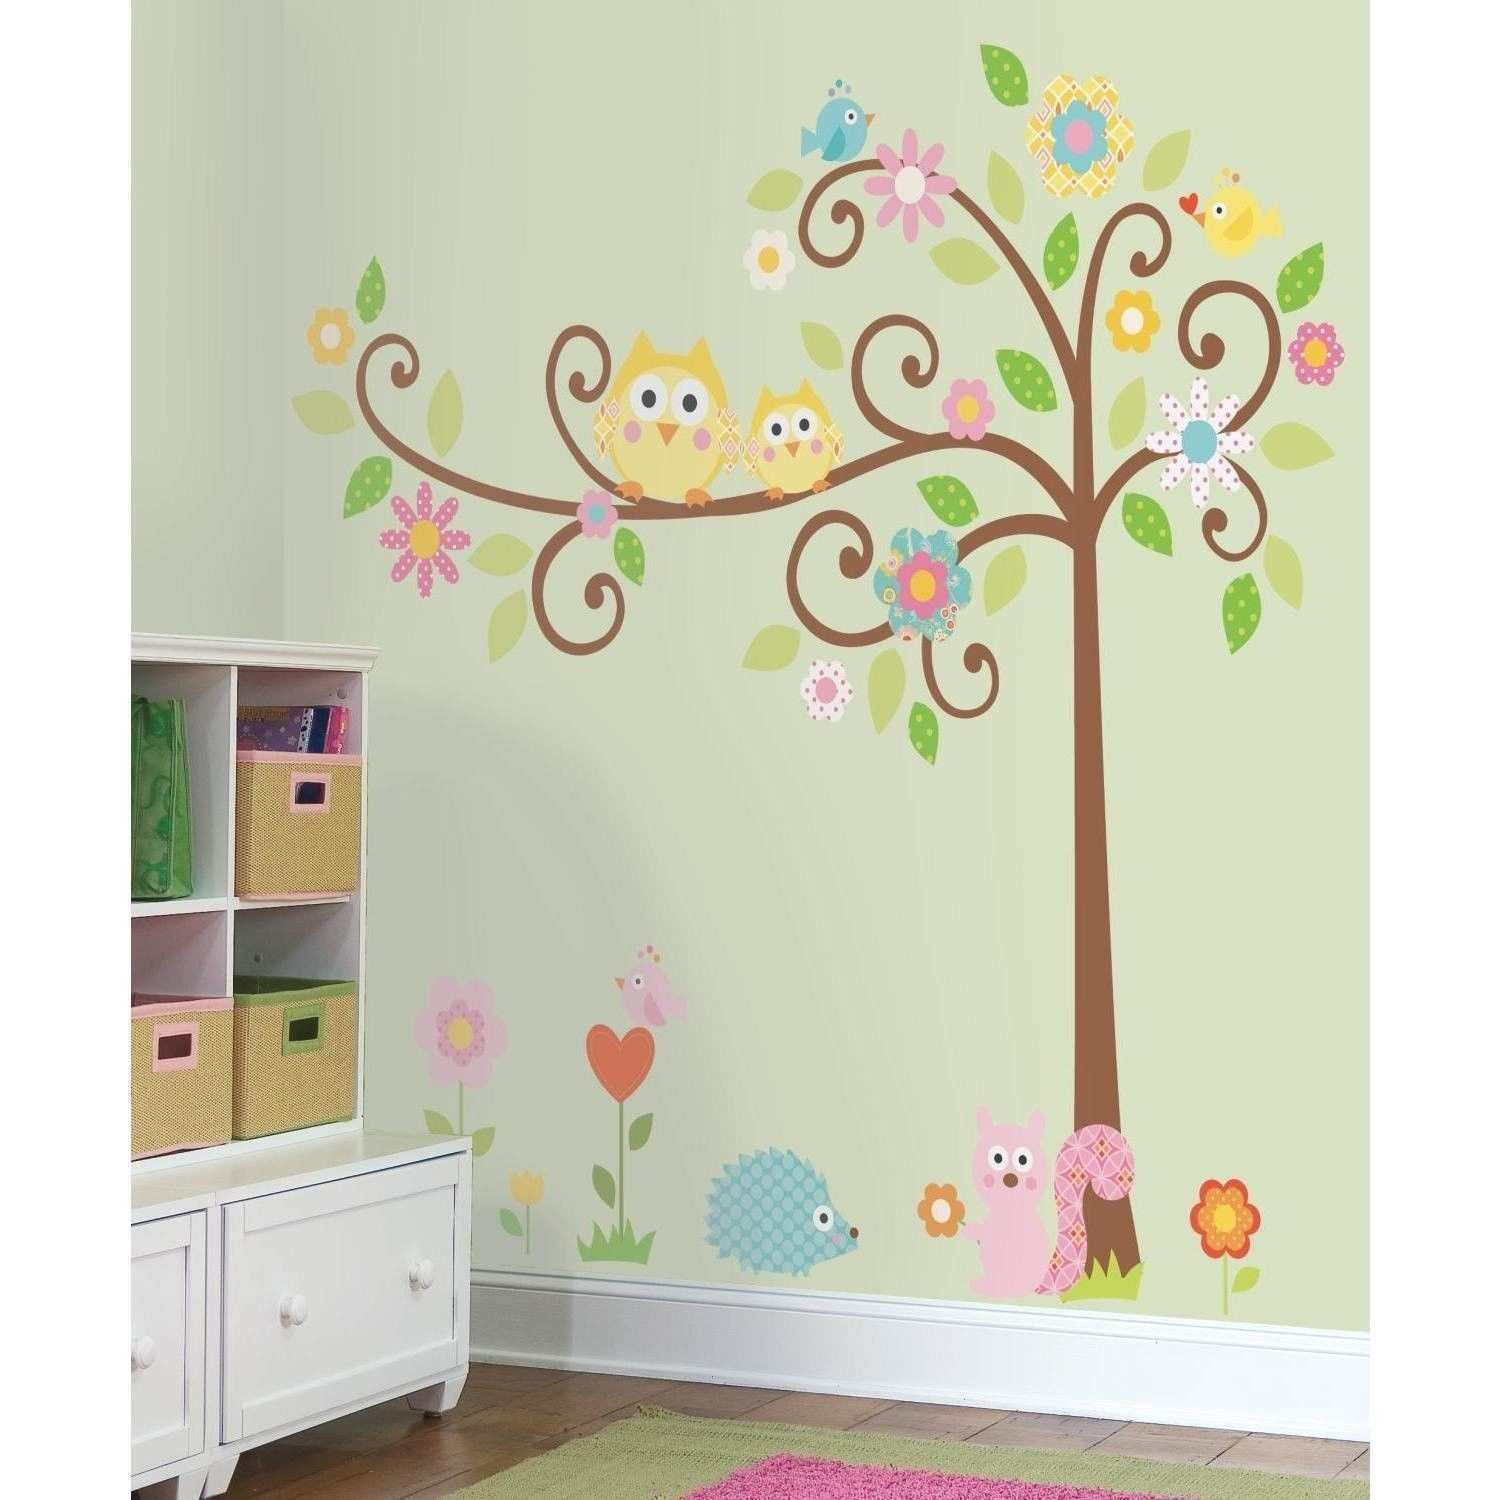 Kids Room Wall Decals For Bedroom Childrens Wall Art Nursery Wall